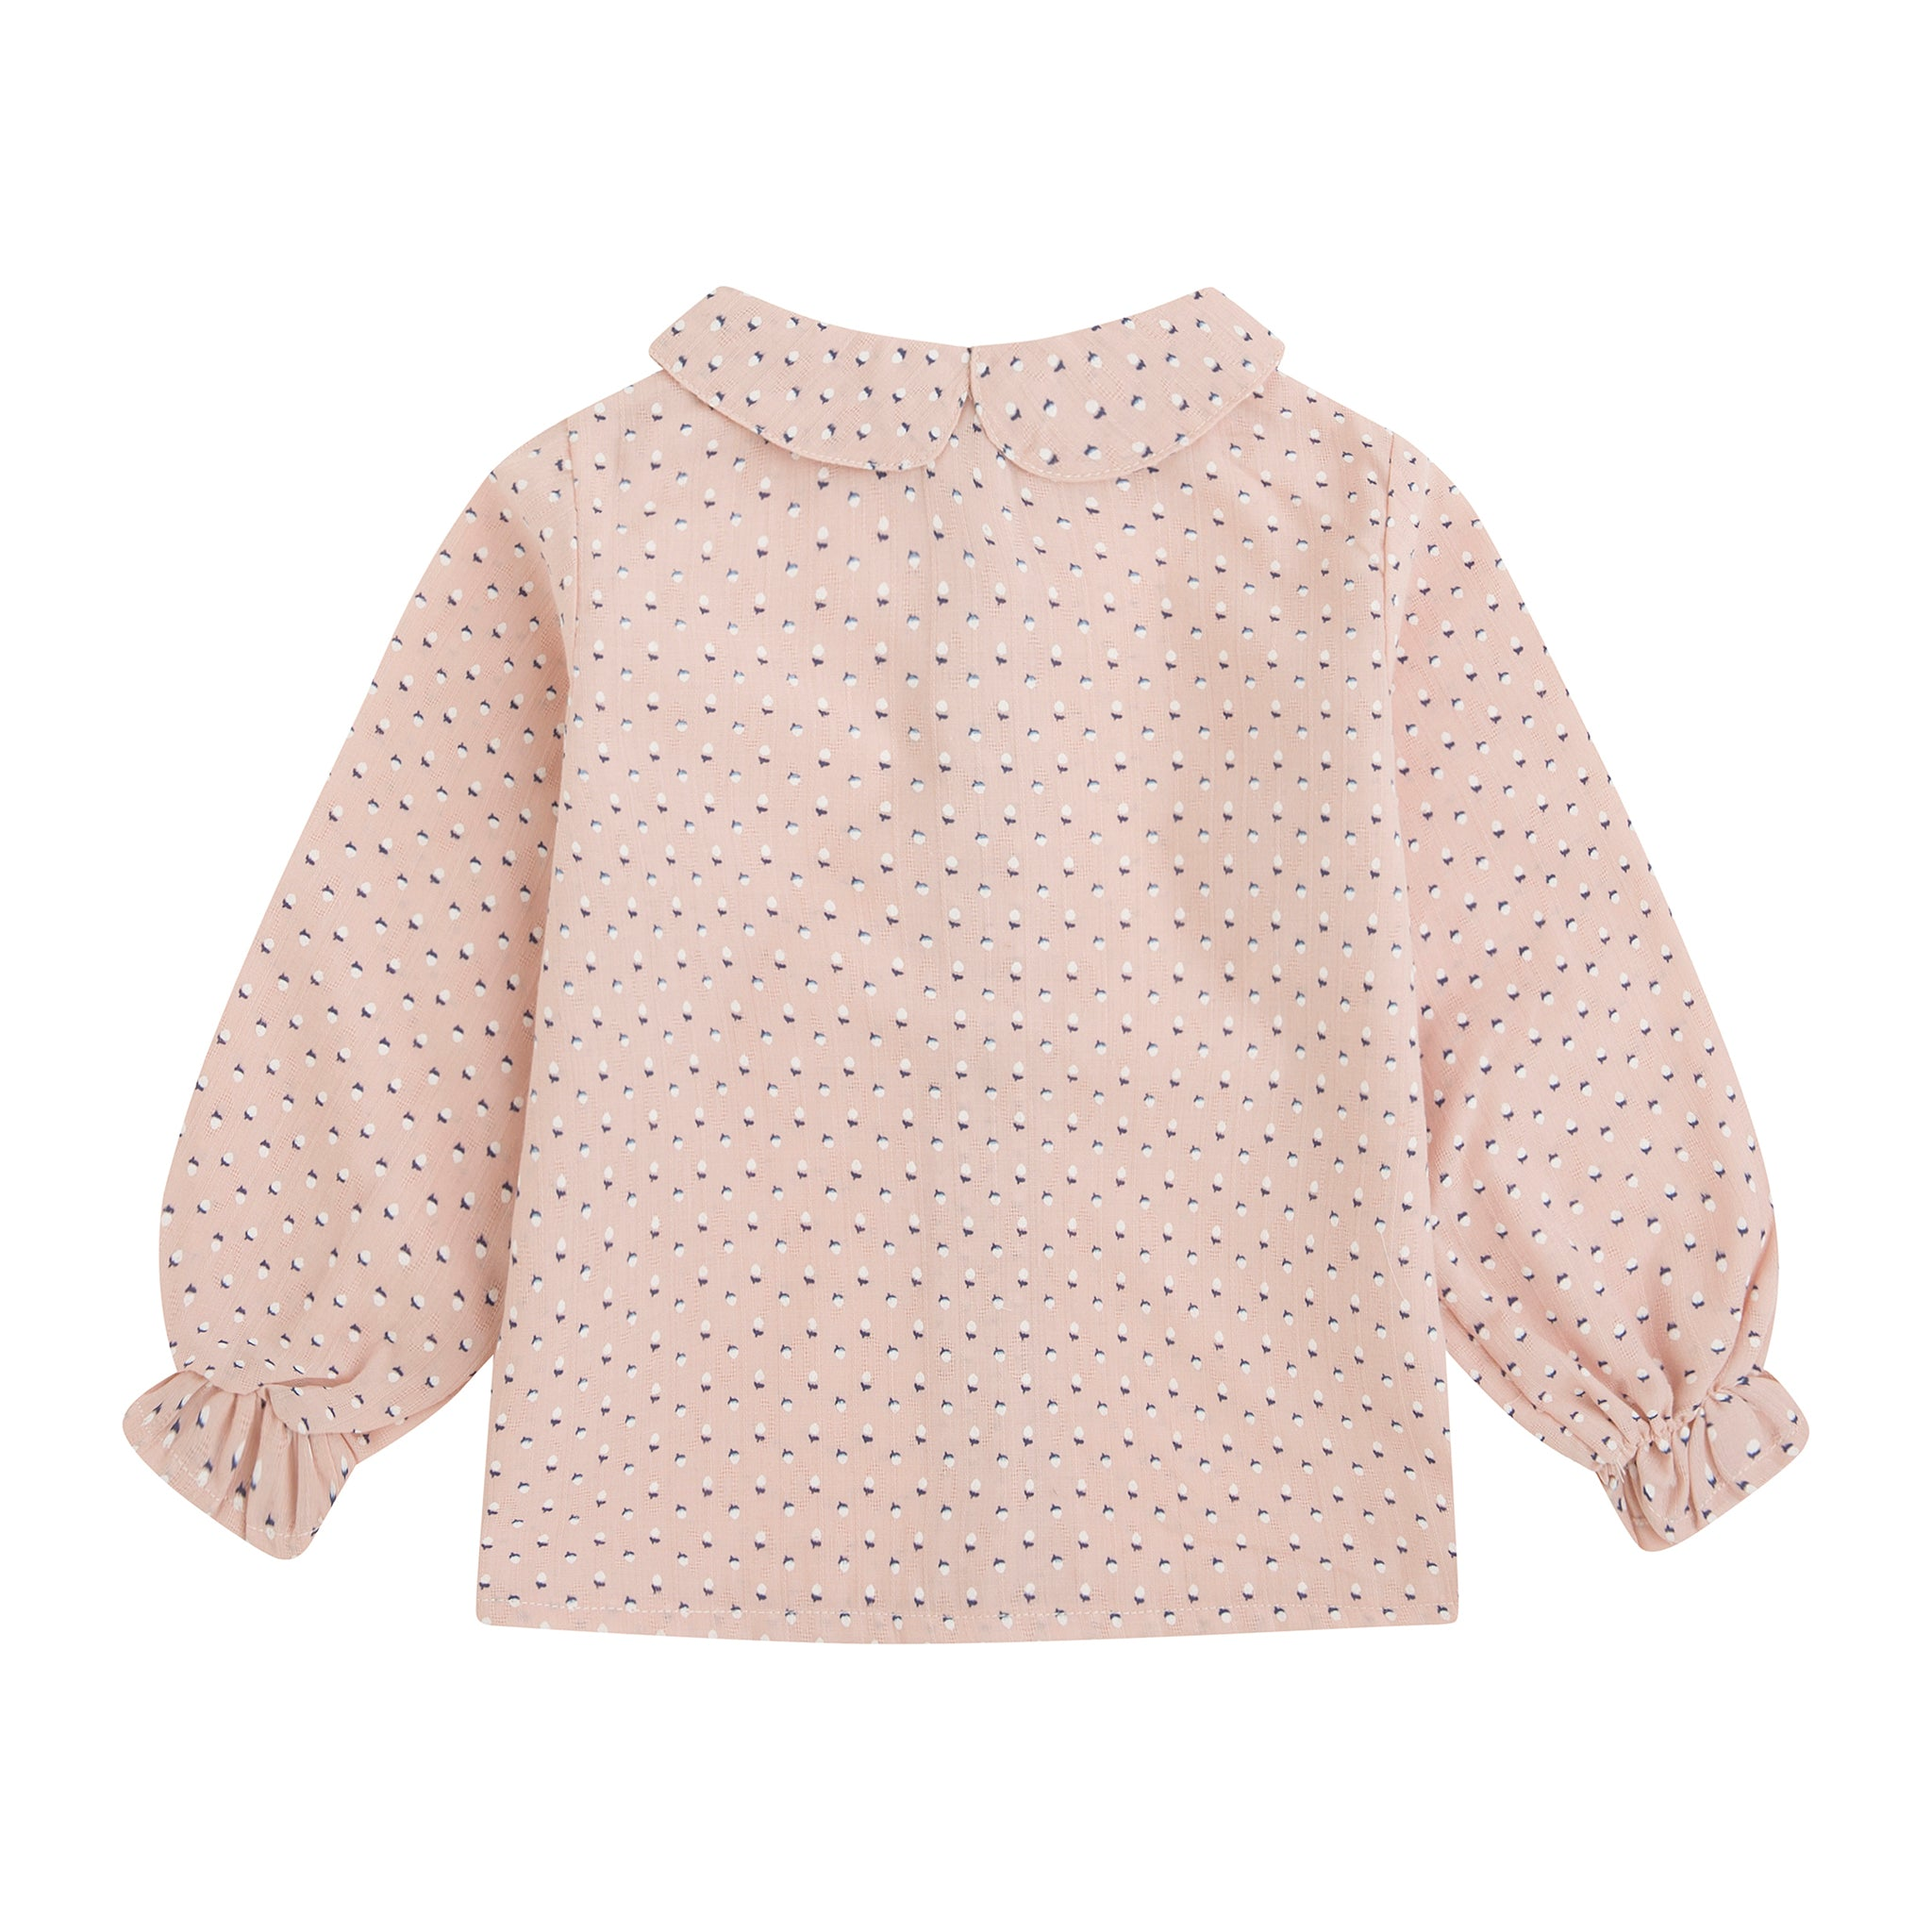 Baby girl tiny nut print with blush pink background blouse. Peter pan collar and wooden buttons down the back.